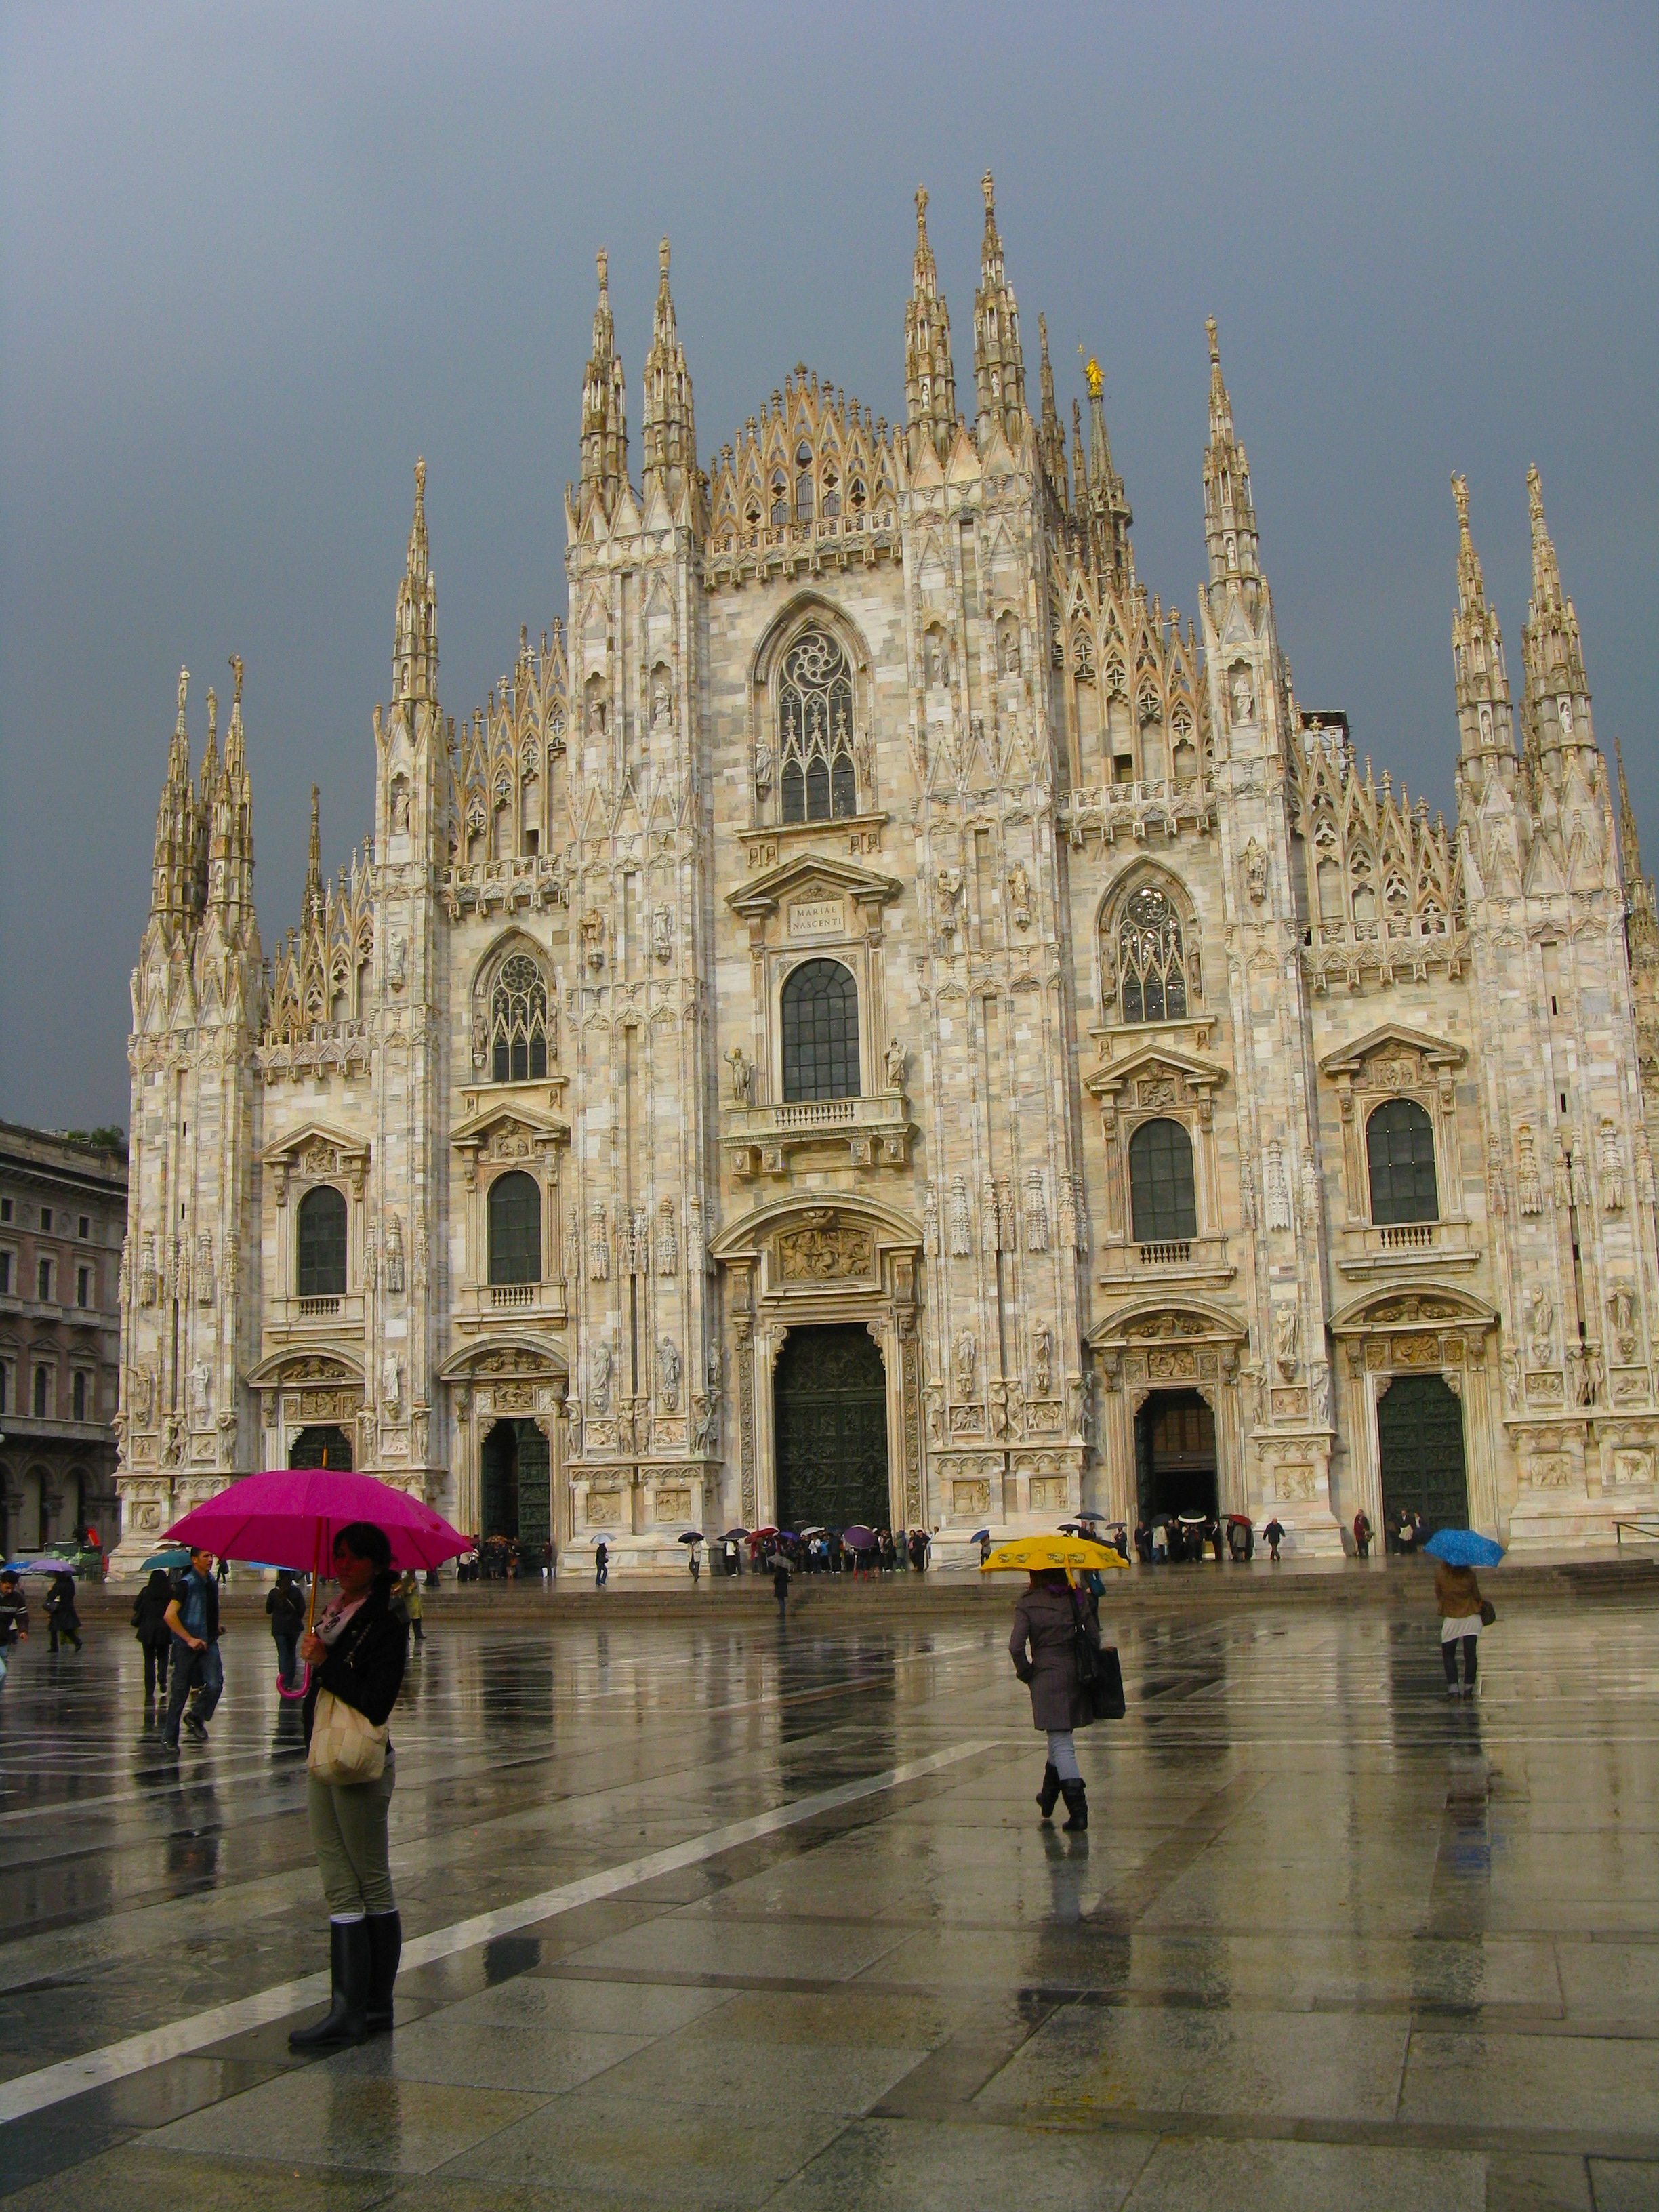 Somehow the Milan Duomo was even more beautiful in the rain